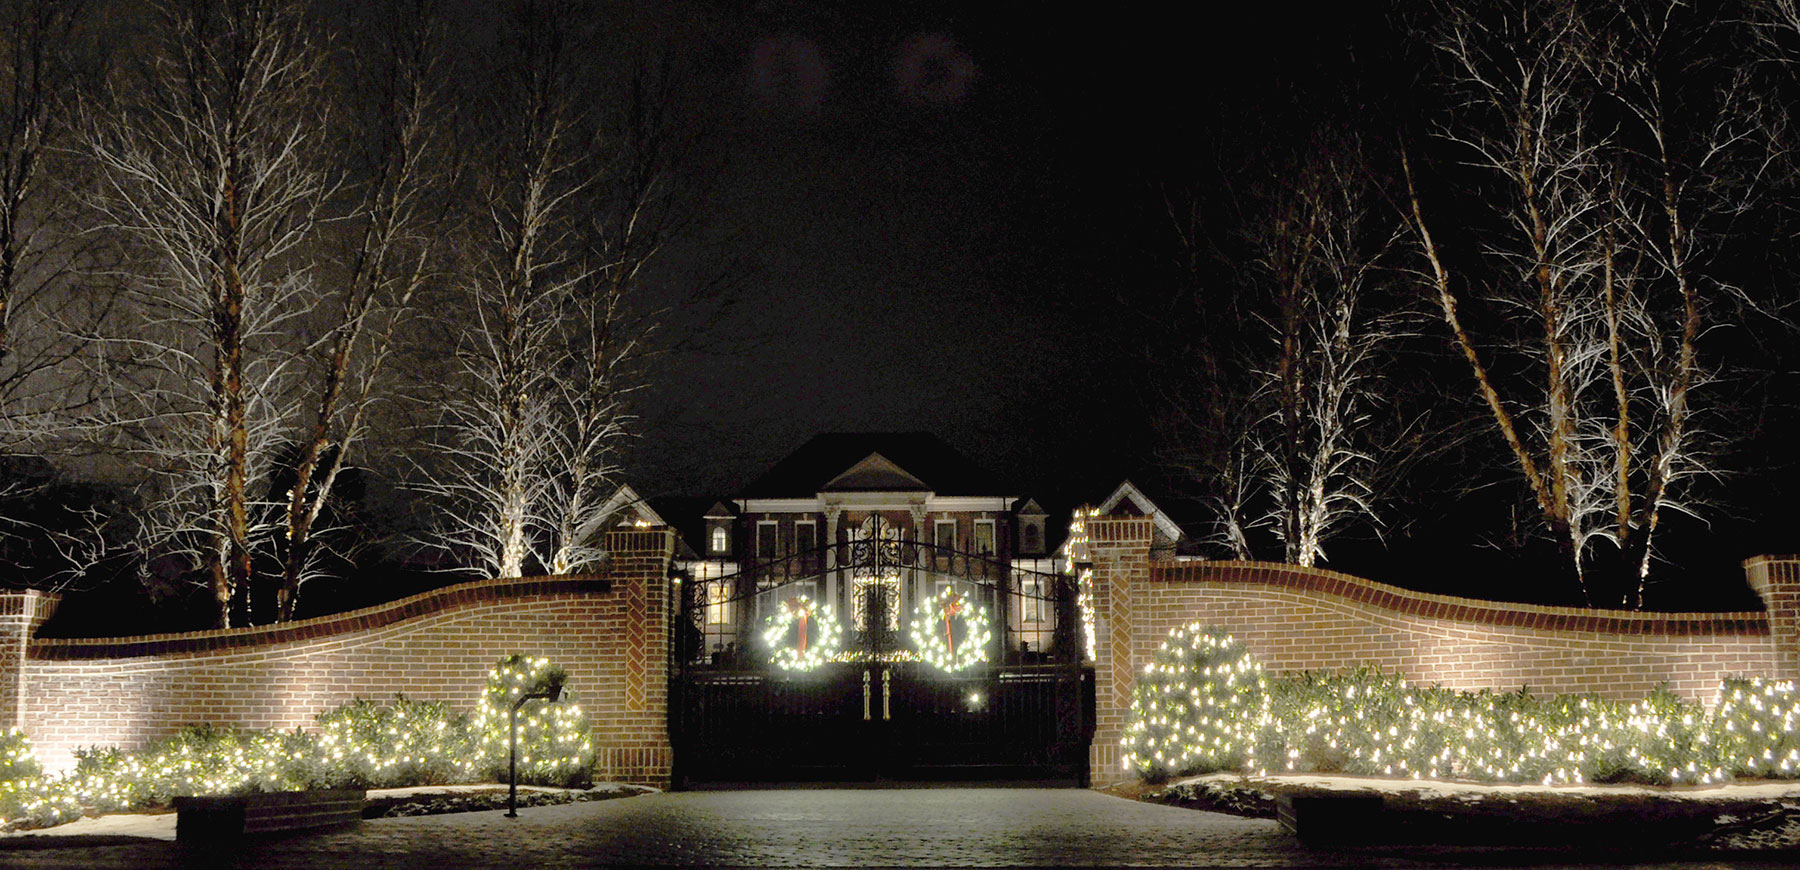 Holiday lighting at a Cincinnati, Ohio home, designed and installed by the professionals at Outdoor Lighting Perspectives of Cincinnati and Dayton, OH.